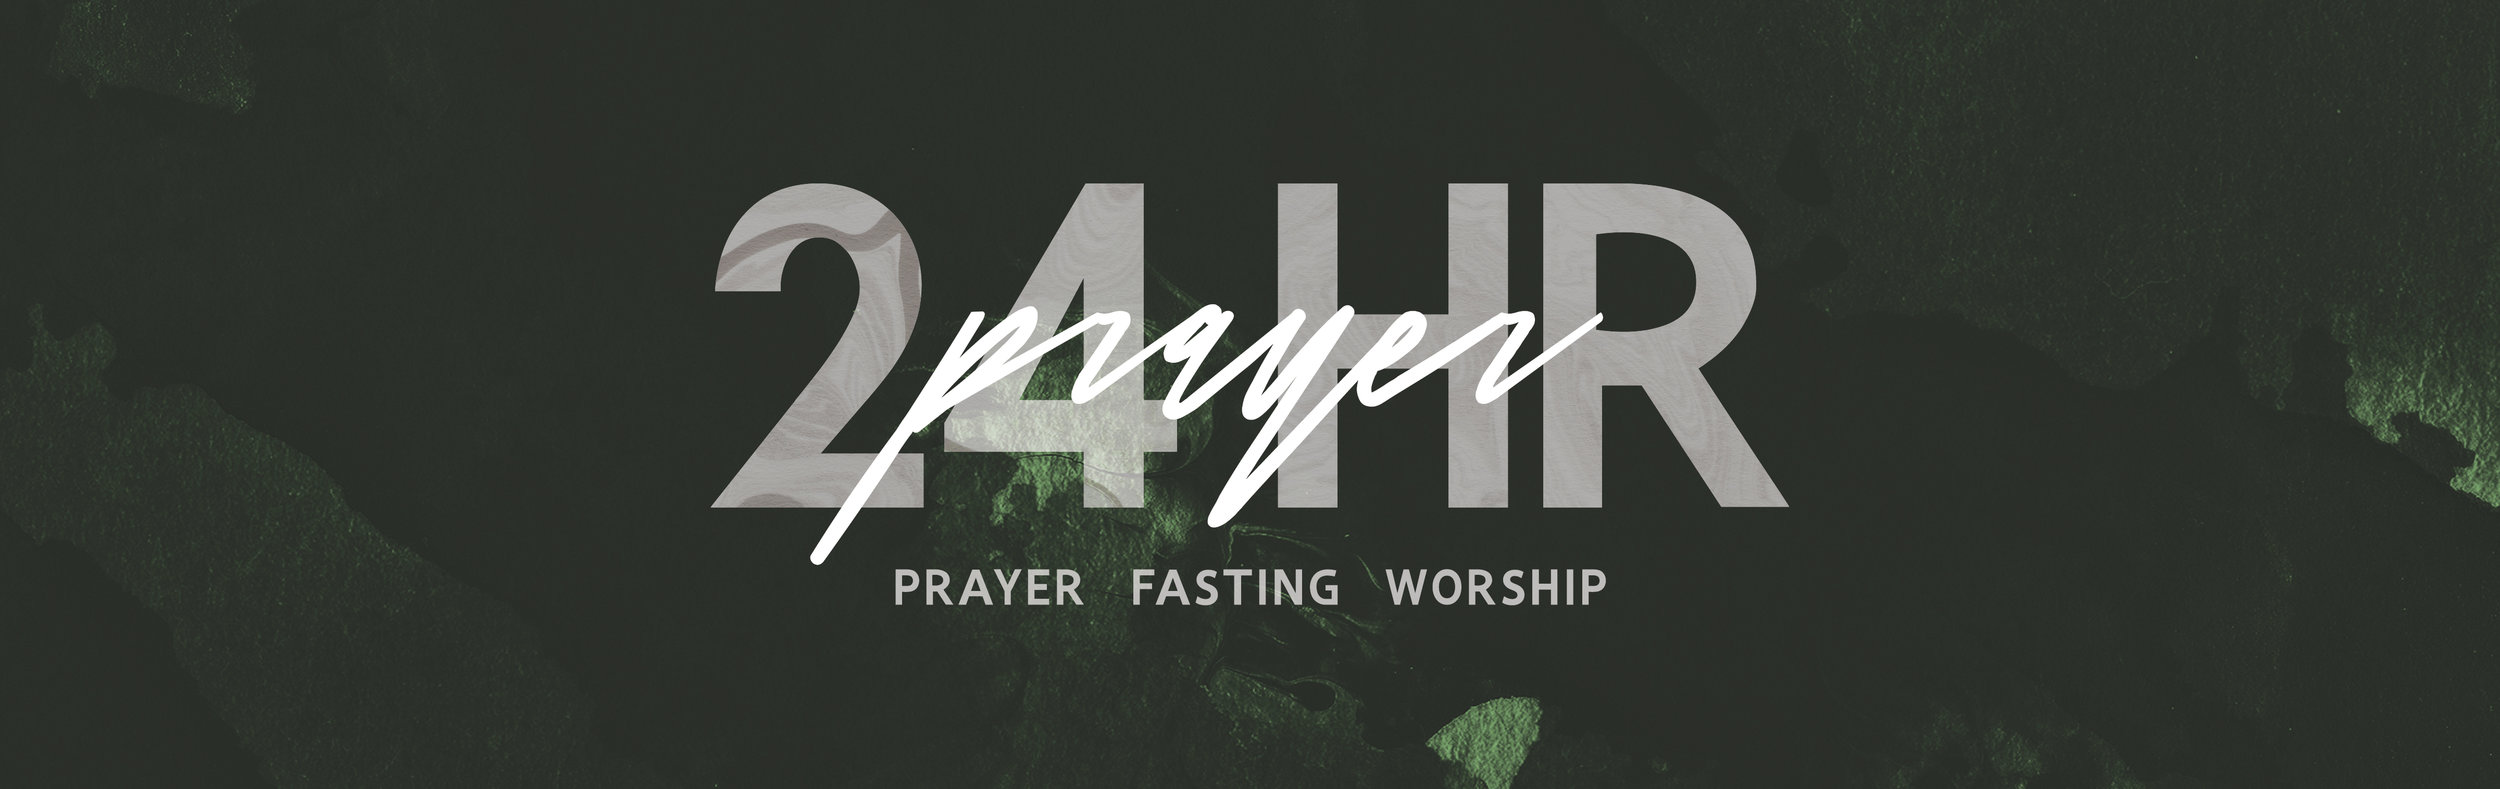 24 Hr Prayer Website Header.jpg